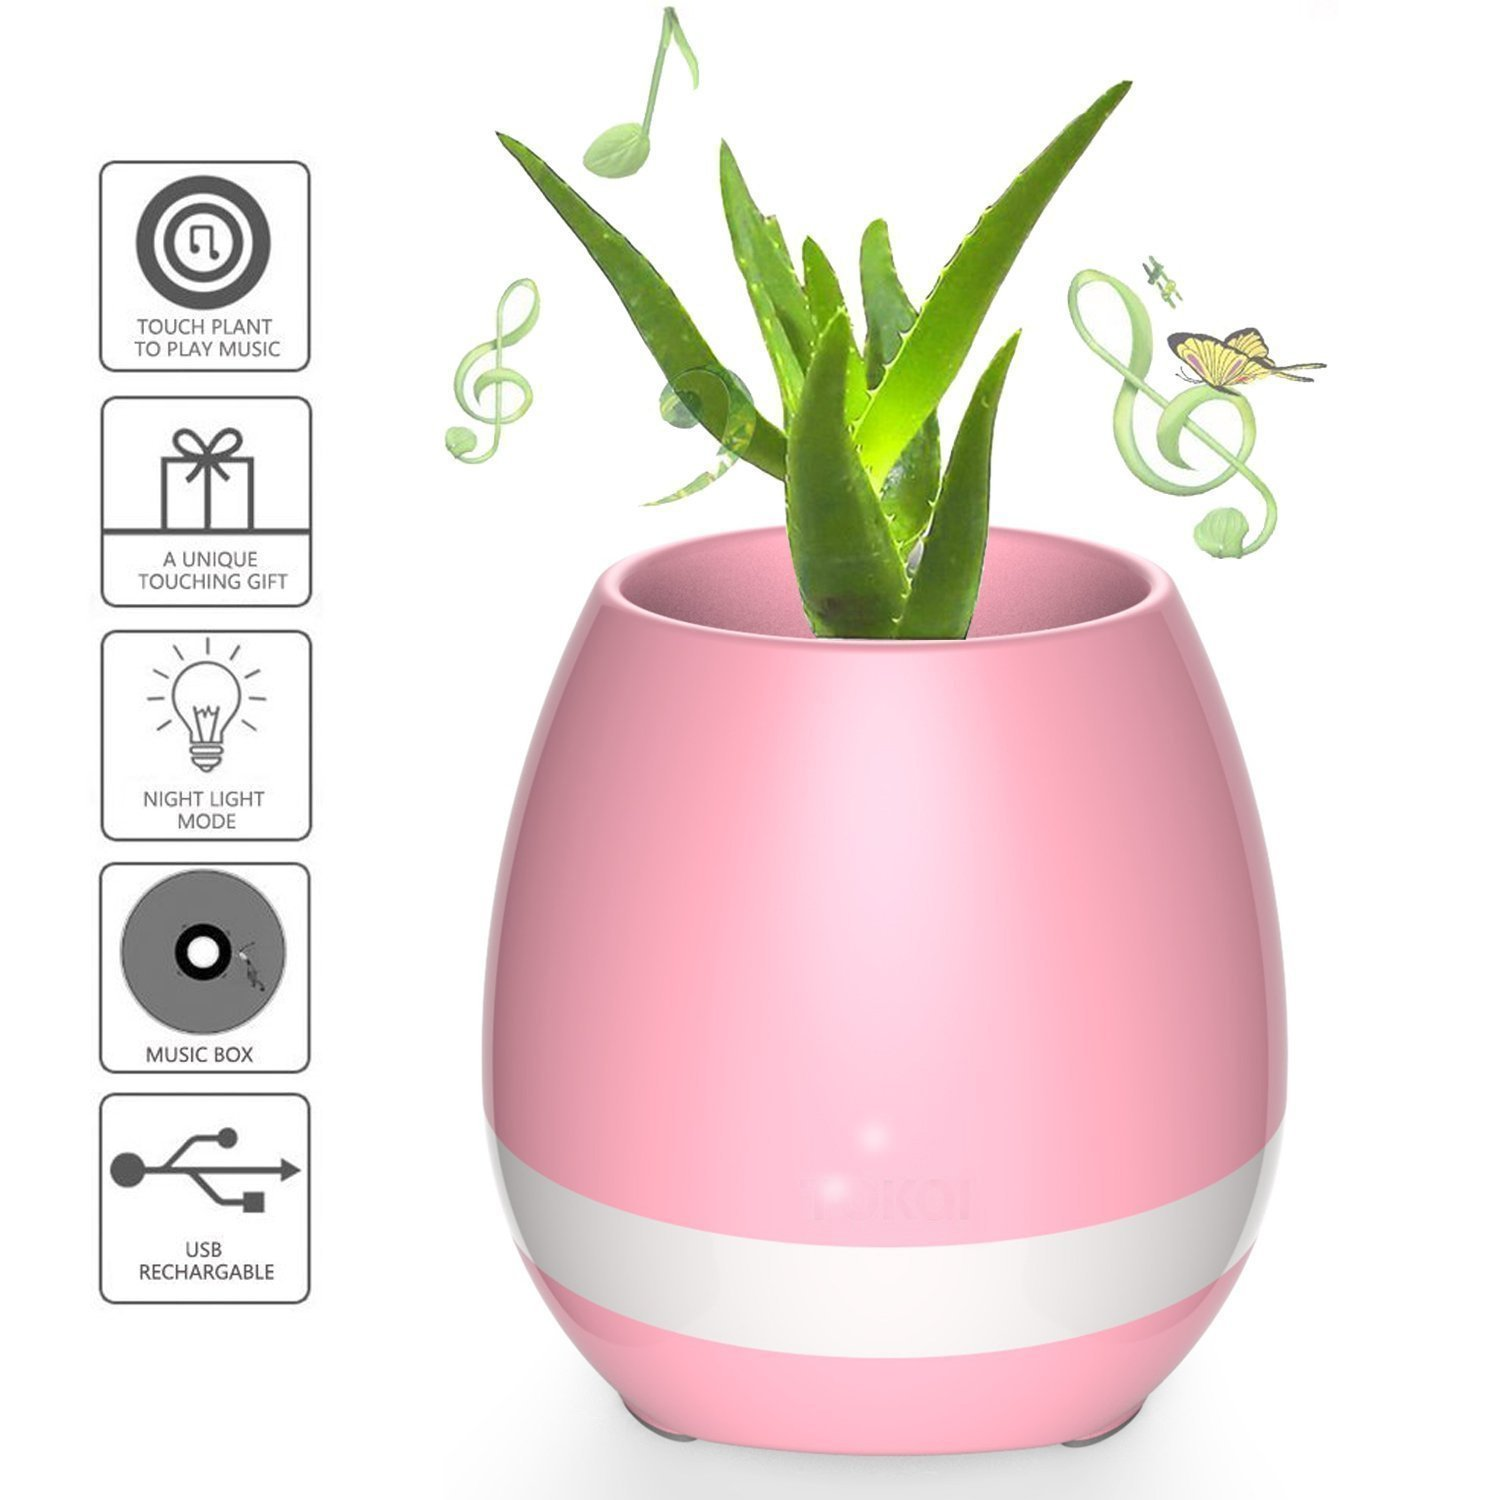 Titanium Micro Smart Bluetooth Speaker Touch Piano Music Playing Rechargeable Wireless Flower Pots with Night Light for Office Home Decor Without Plant (Pink)